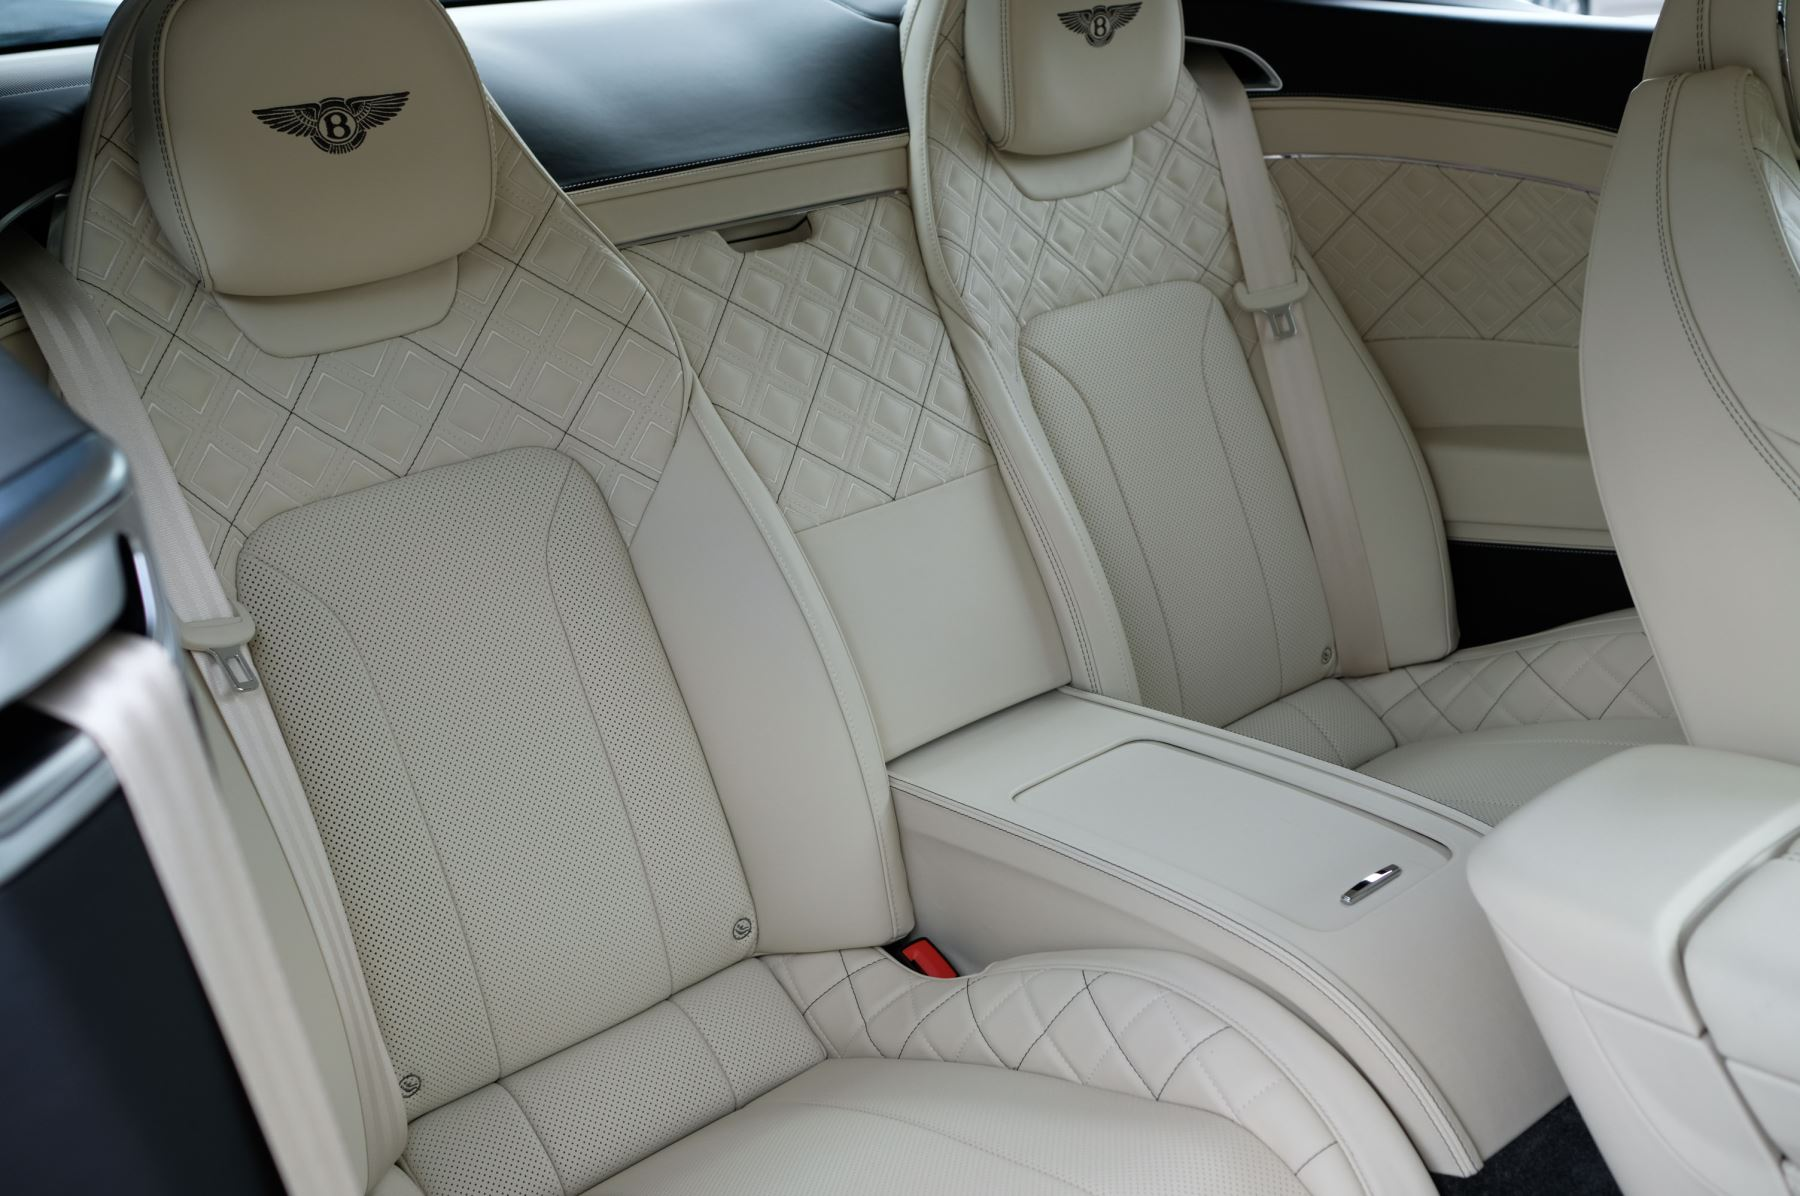 Bentley Continental GT 6.0 W12 1st Edition - Comfort Seating - Touring Specification image 14